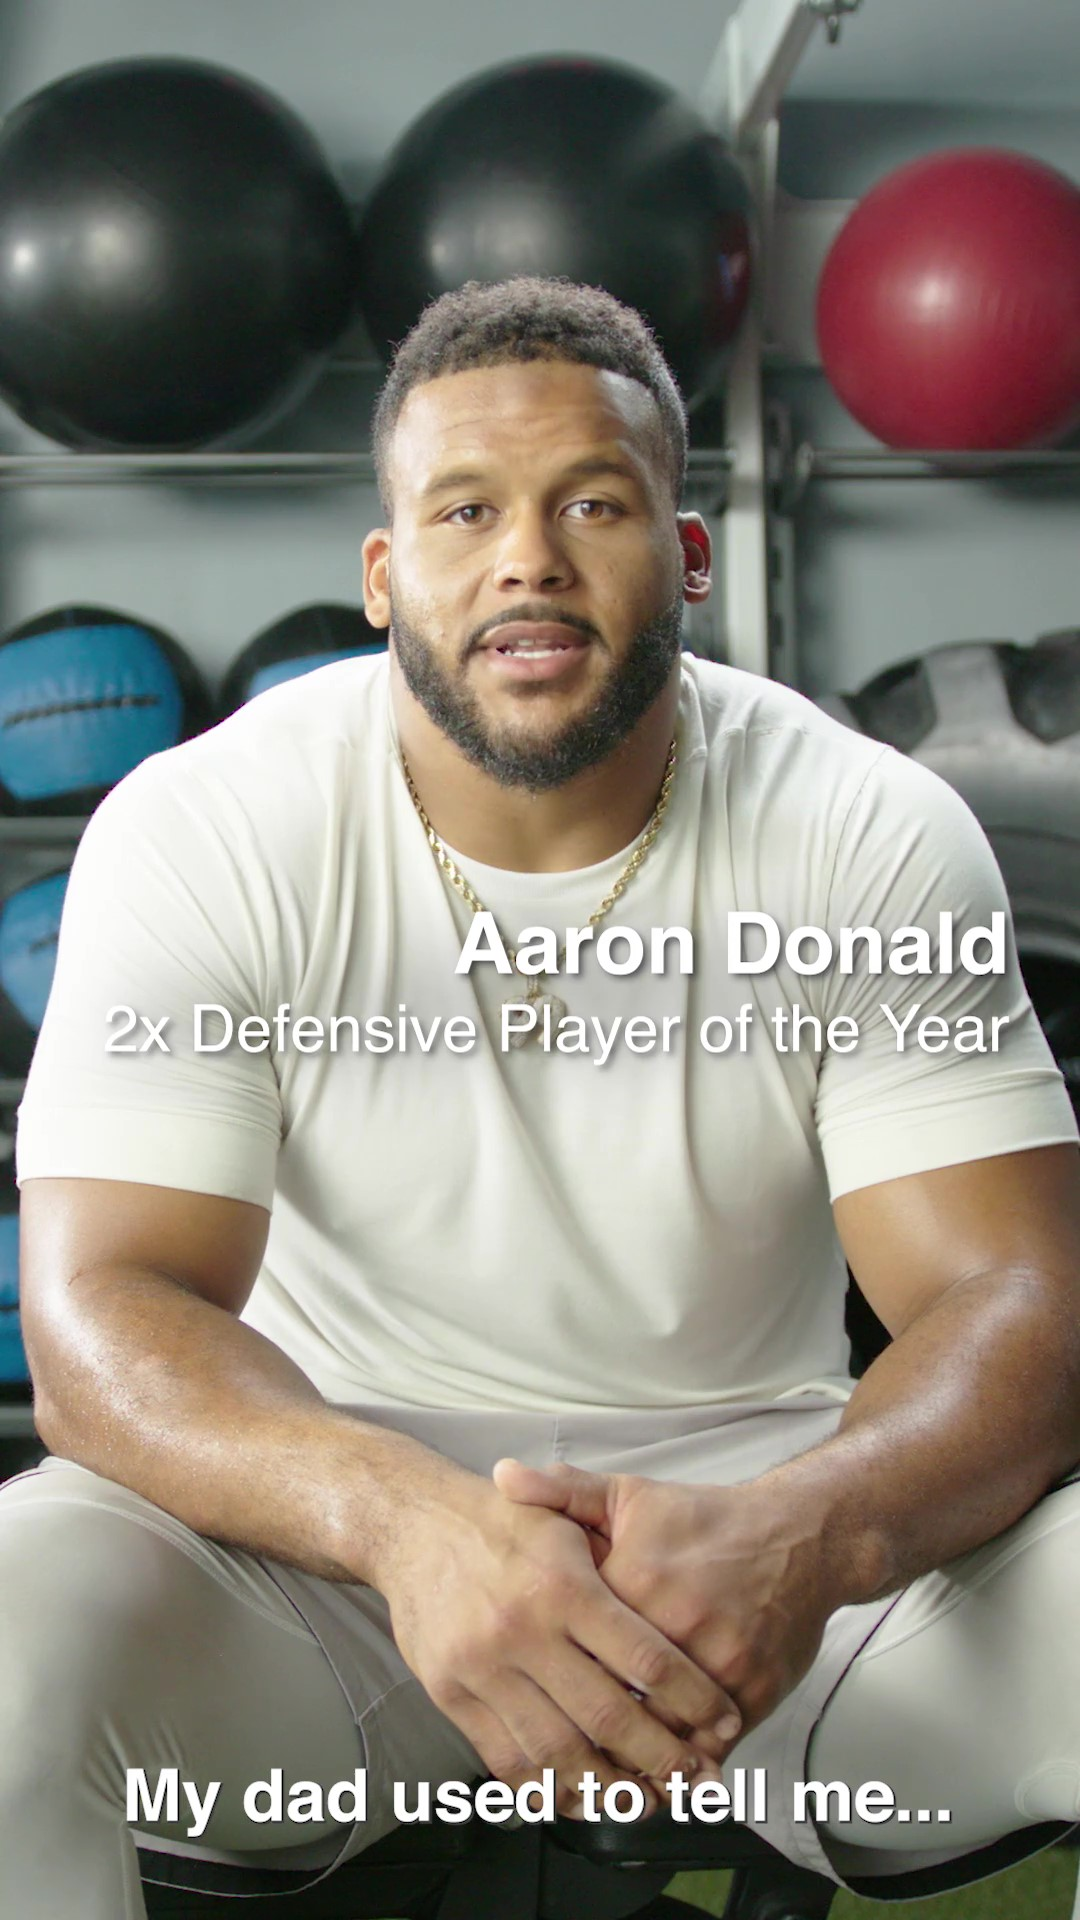 Aaron Donald Train to Soak Video